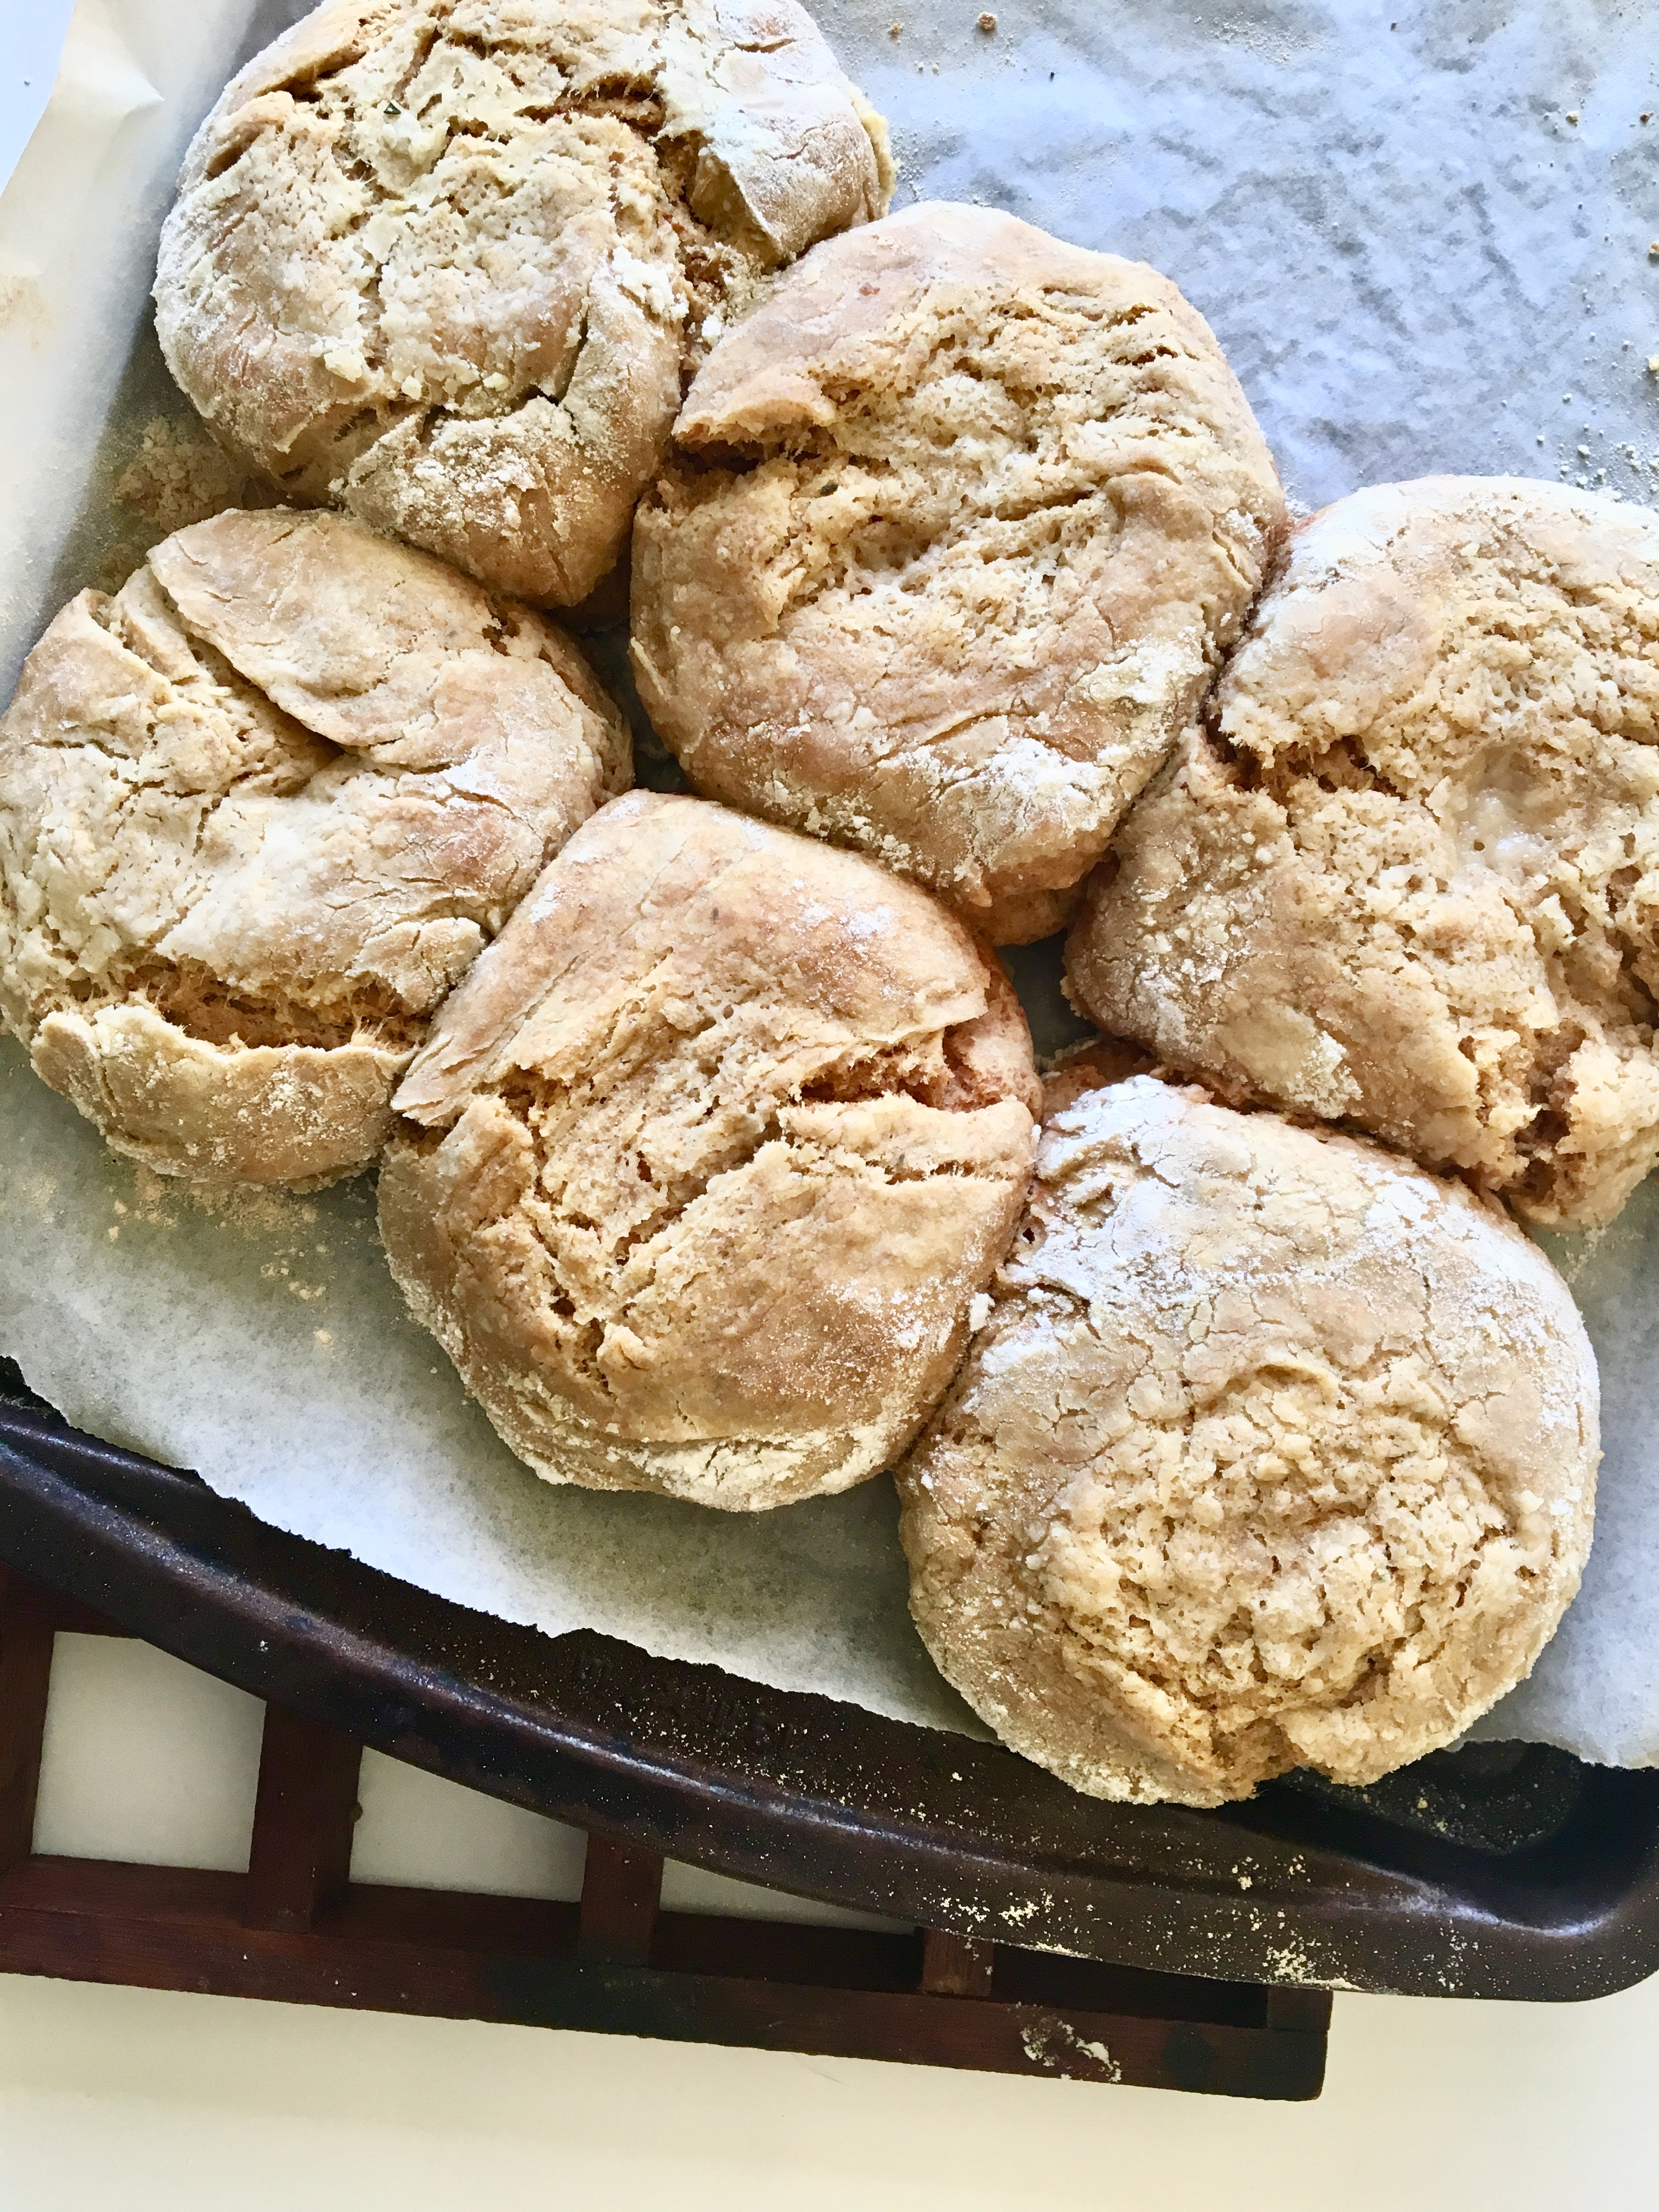 Vegan Biscuits - easy, fluffy, flavor bombs perfect for dunking in chicken(less) noodle soup // plantpowercouple.com